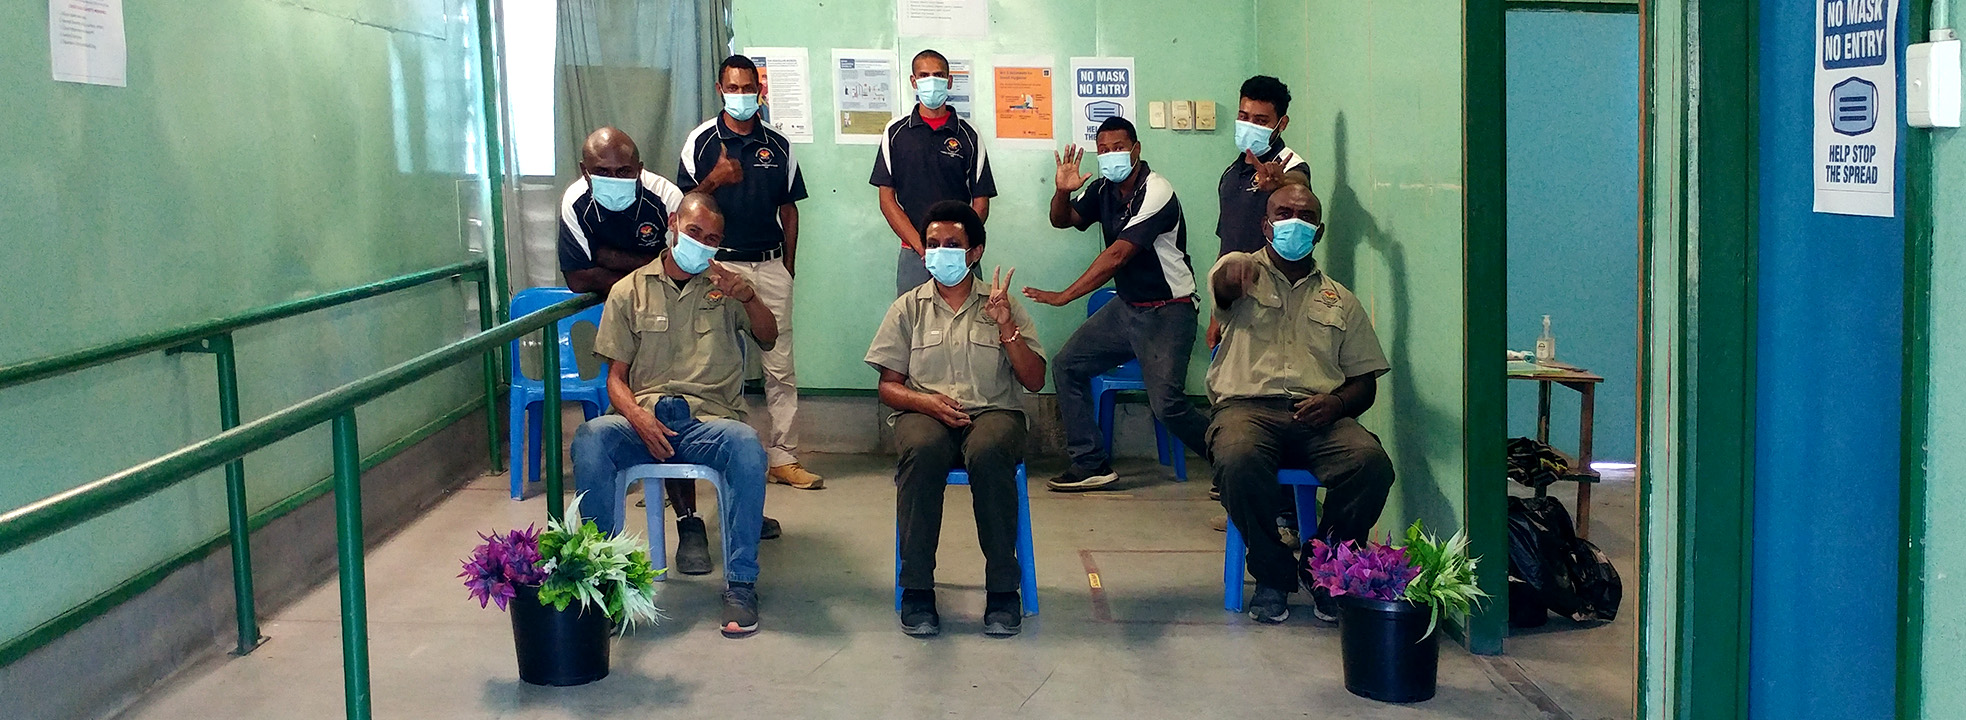 At the end of a long room, eight people pose for the camera humourously, while wearing masks.